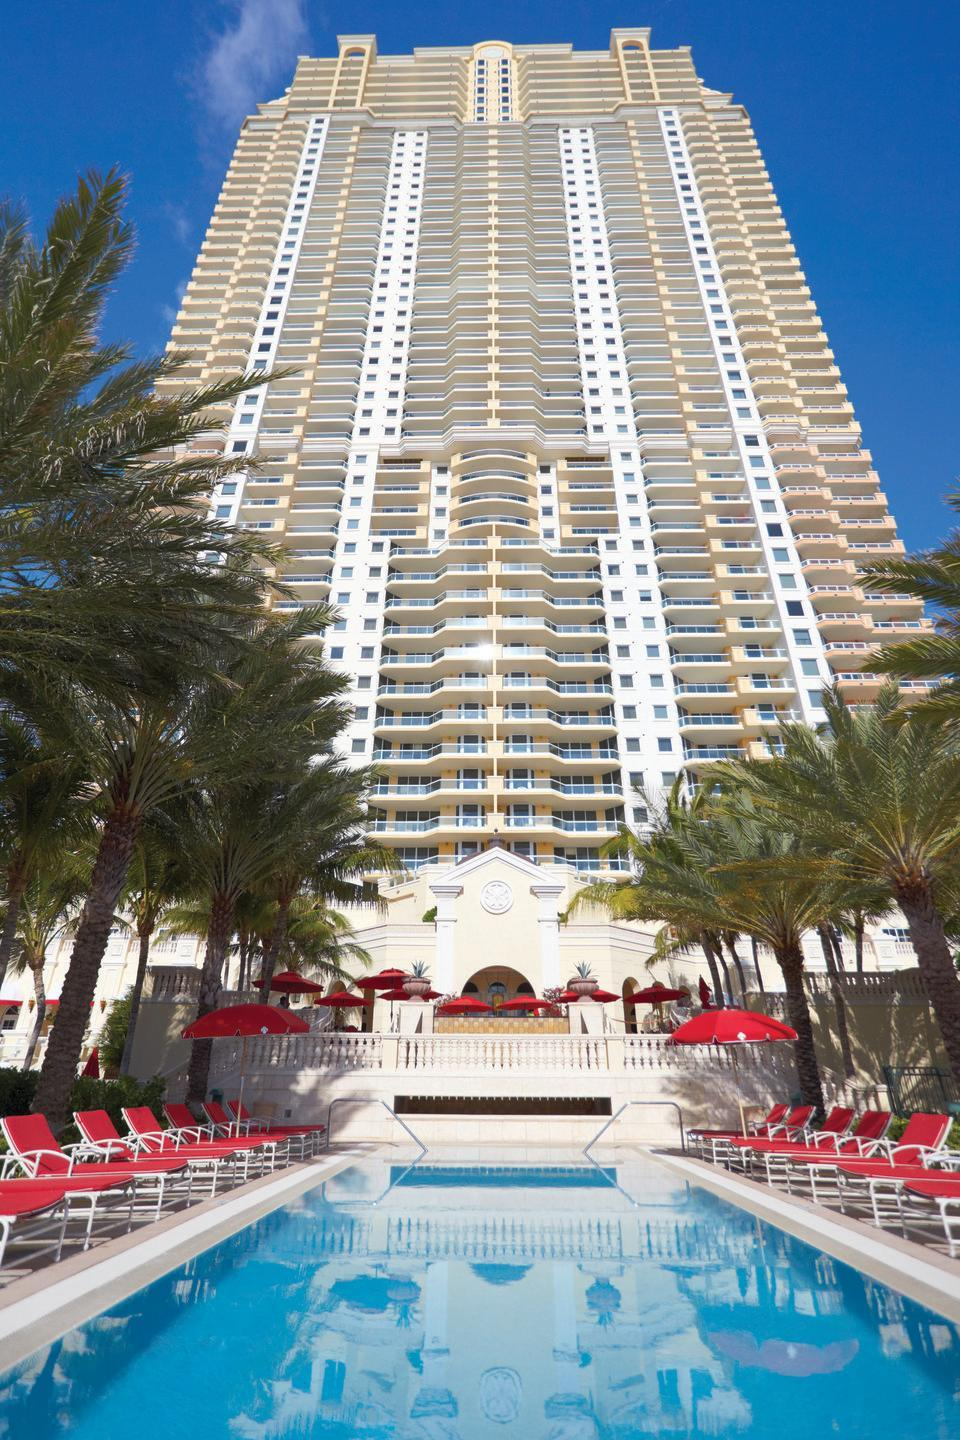 """<p><a href=""""https://www.acqualinaresort.com/"""" rel=""""nofollow noopener"""" target=""""_blank"""" data-ylk=""""slk:Acqualina"""" class=""""link rapid-noclick-resp"""">Acqualina</a> is currently considered """"the best beachfront hotel in the continental U.S.,"""" according to Trip Advisor, and it doesn't take long to understand why. This gorgeous resort, set alongside a pristine strip of Miami Beach, is packed with world-class amenities top-to-bottom, from dining options to pools. It also has some unique offerings, like a reading program, an innovative kids' club, and access to world-renowned golf courses. There's truly something for everyone here.</p>"""